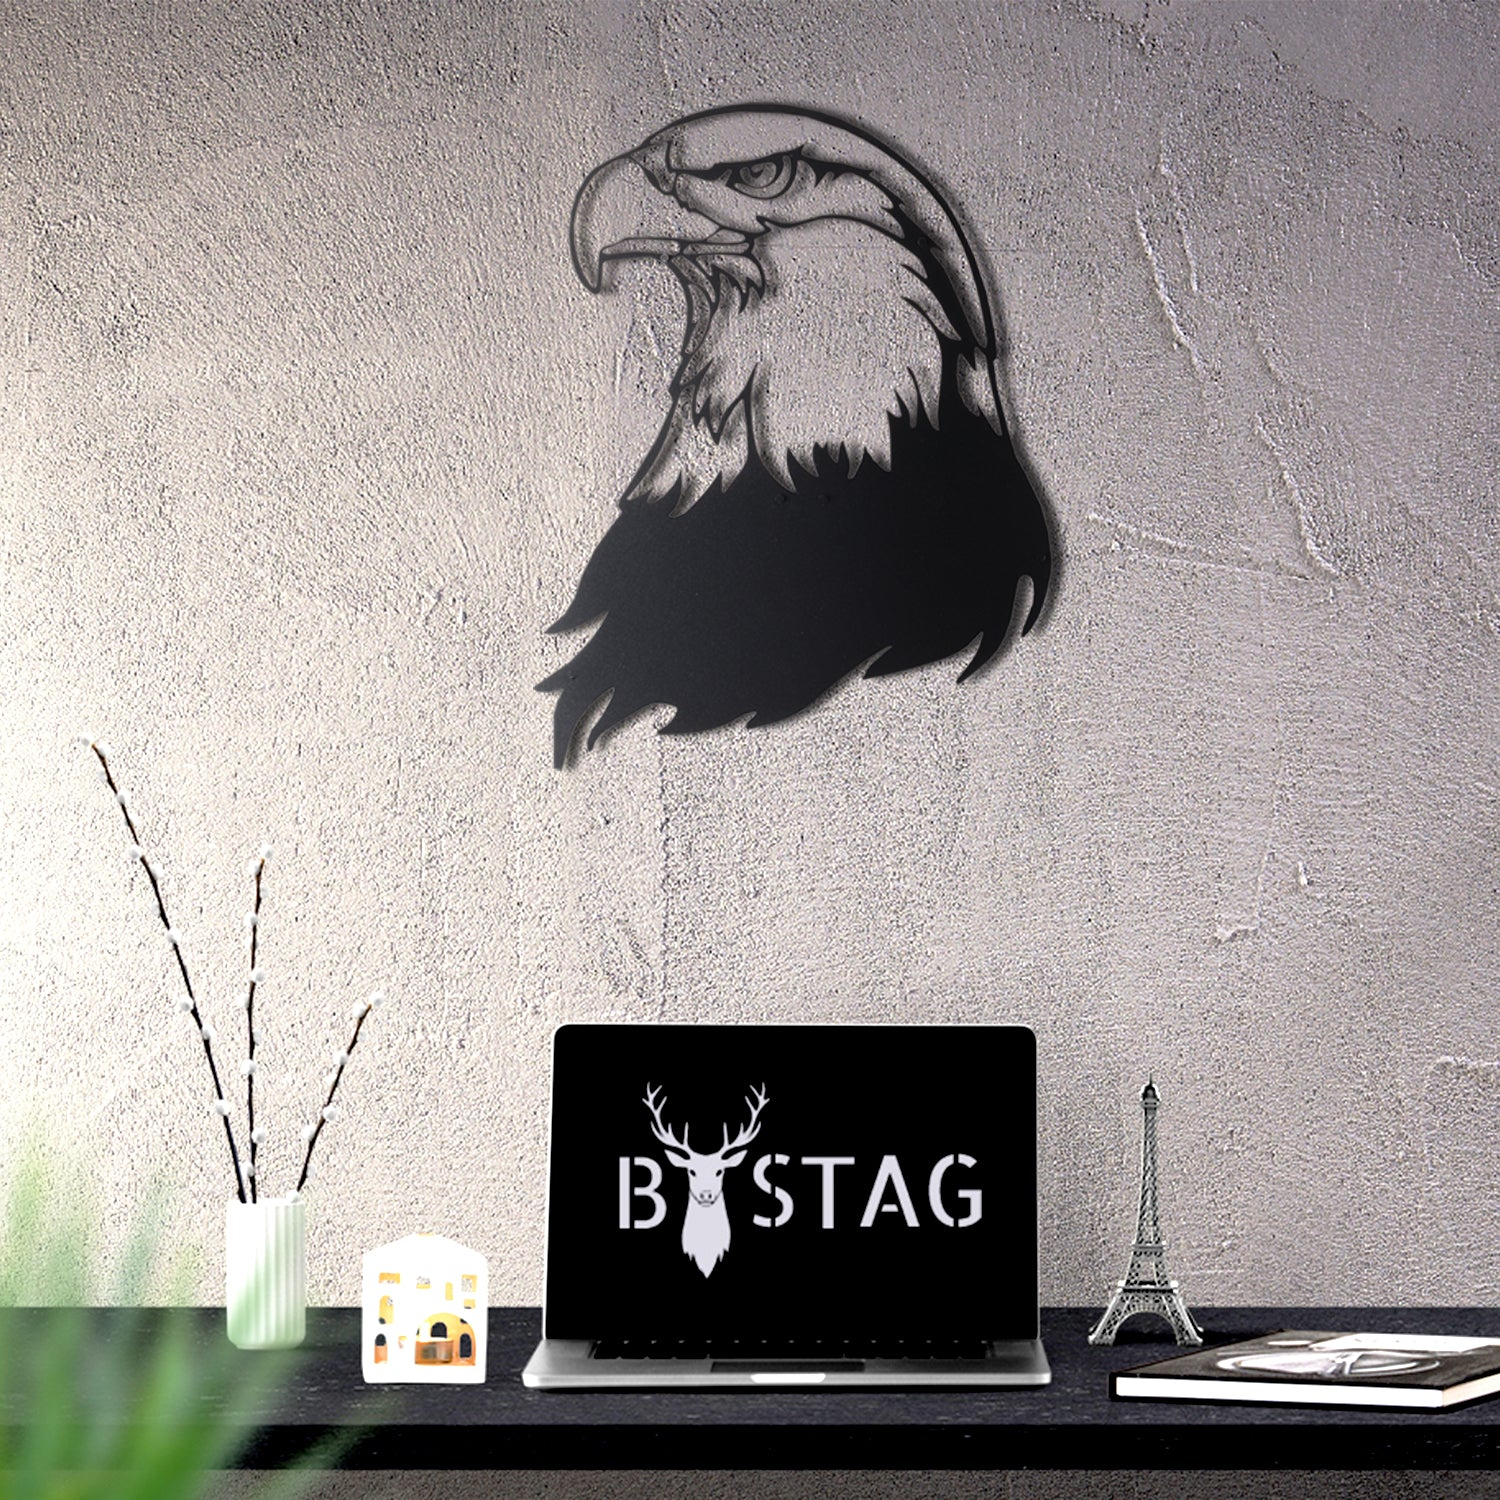 Bystag metal dekoratif duvar aksesuarı kartal- Bystag metal wall art-wall art-wall decor-metal wall decor-eagle